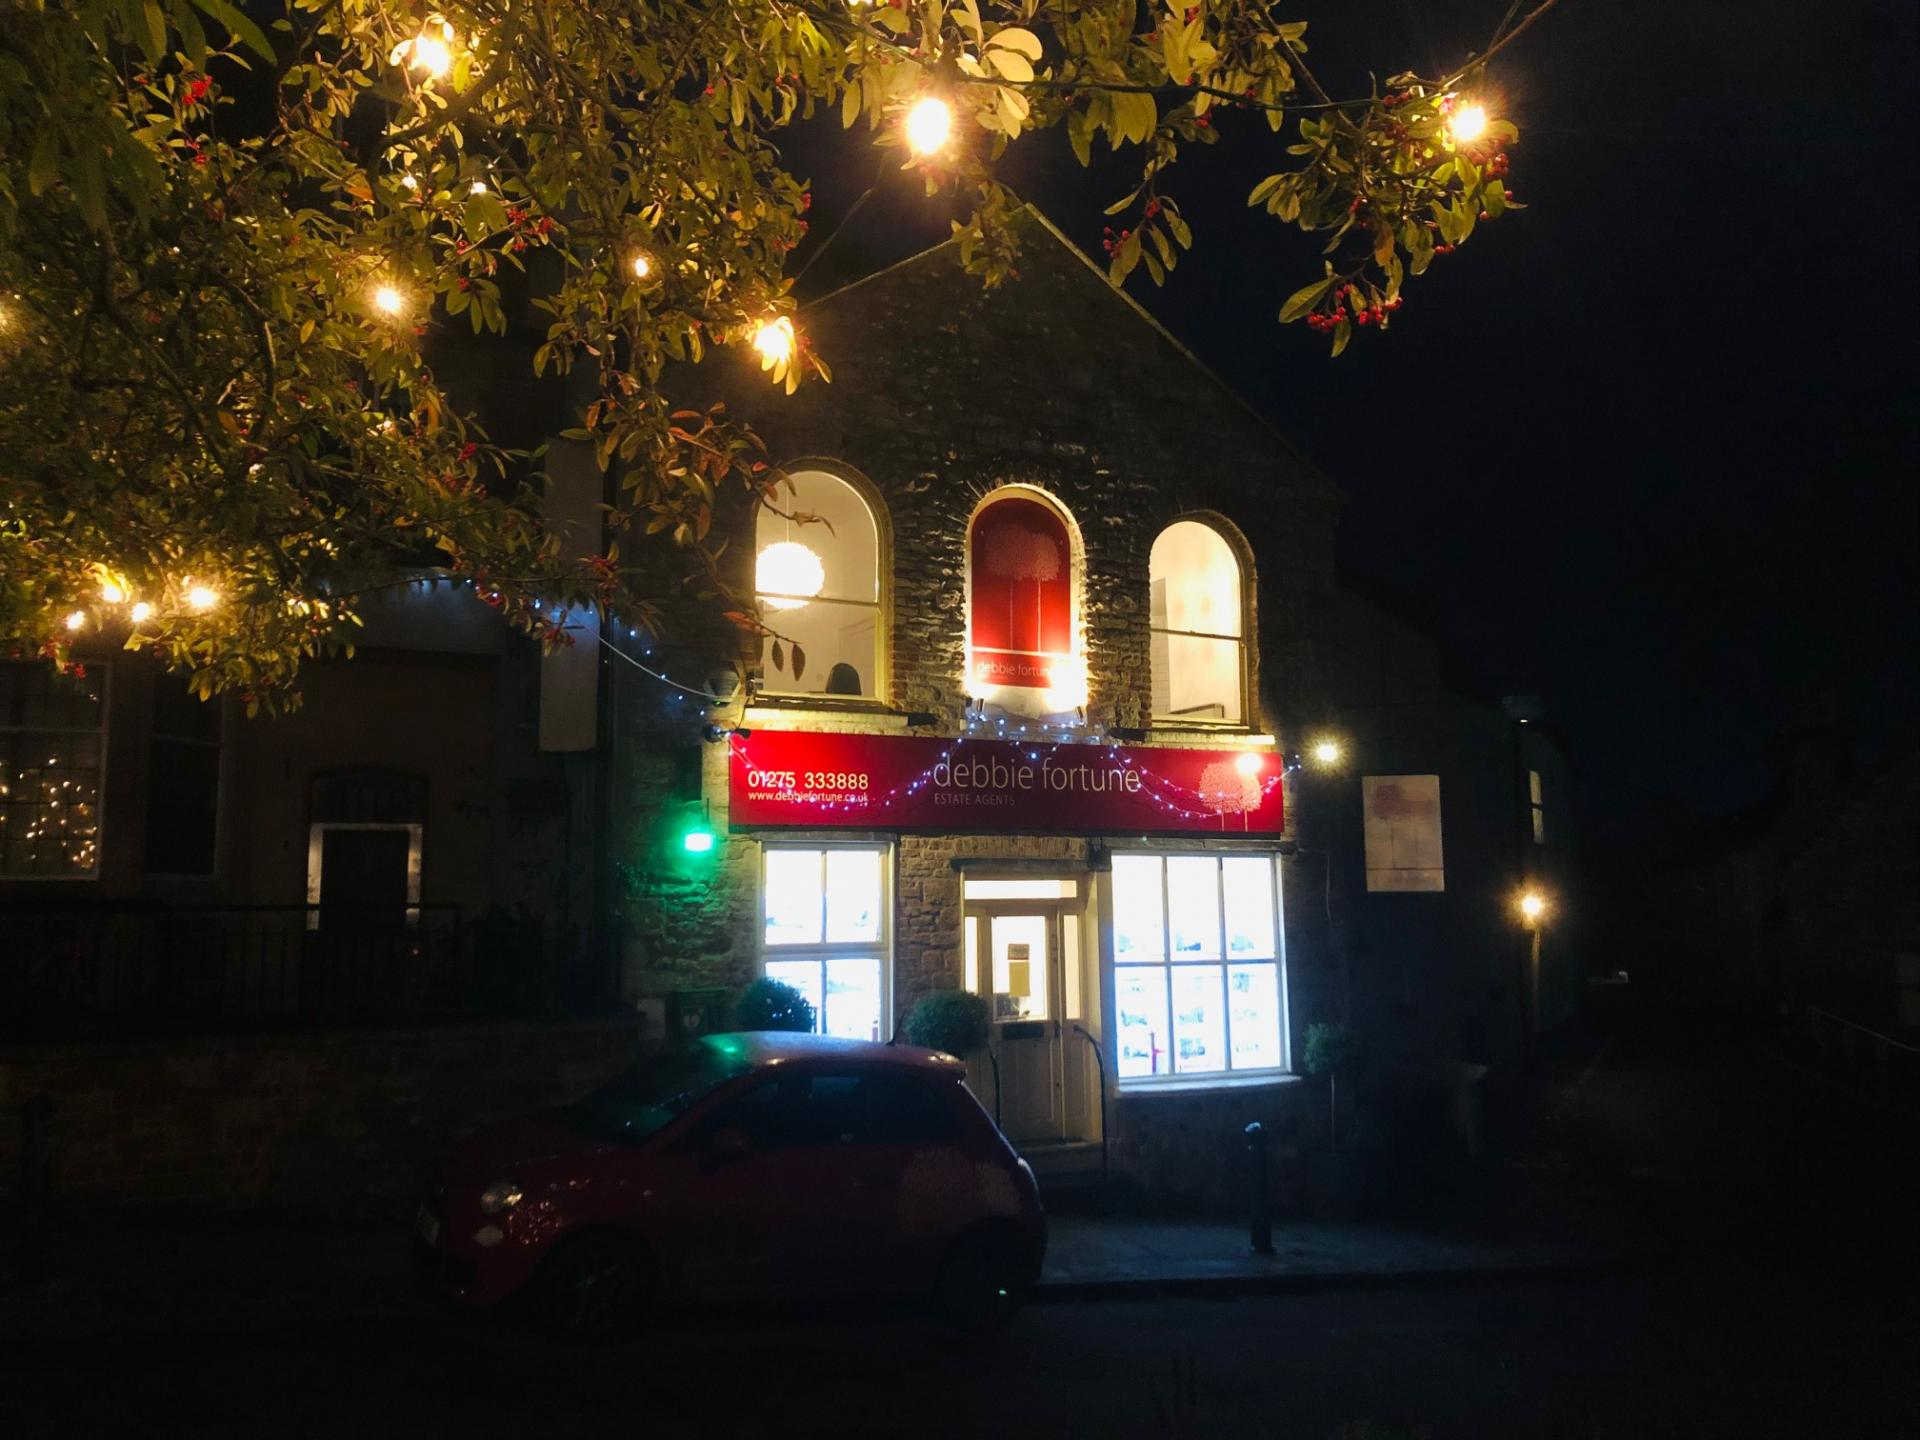 It's beginning to look a lot like Christmas in Chew Magna!